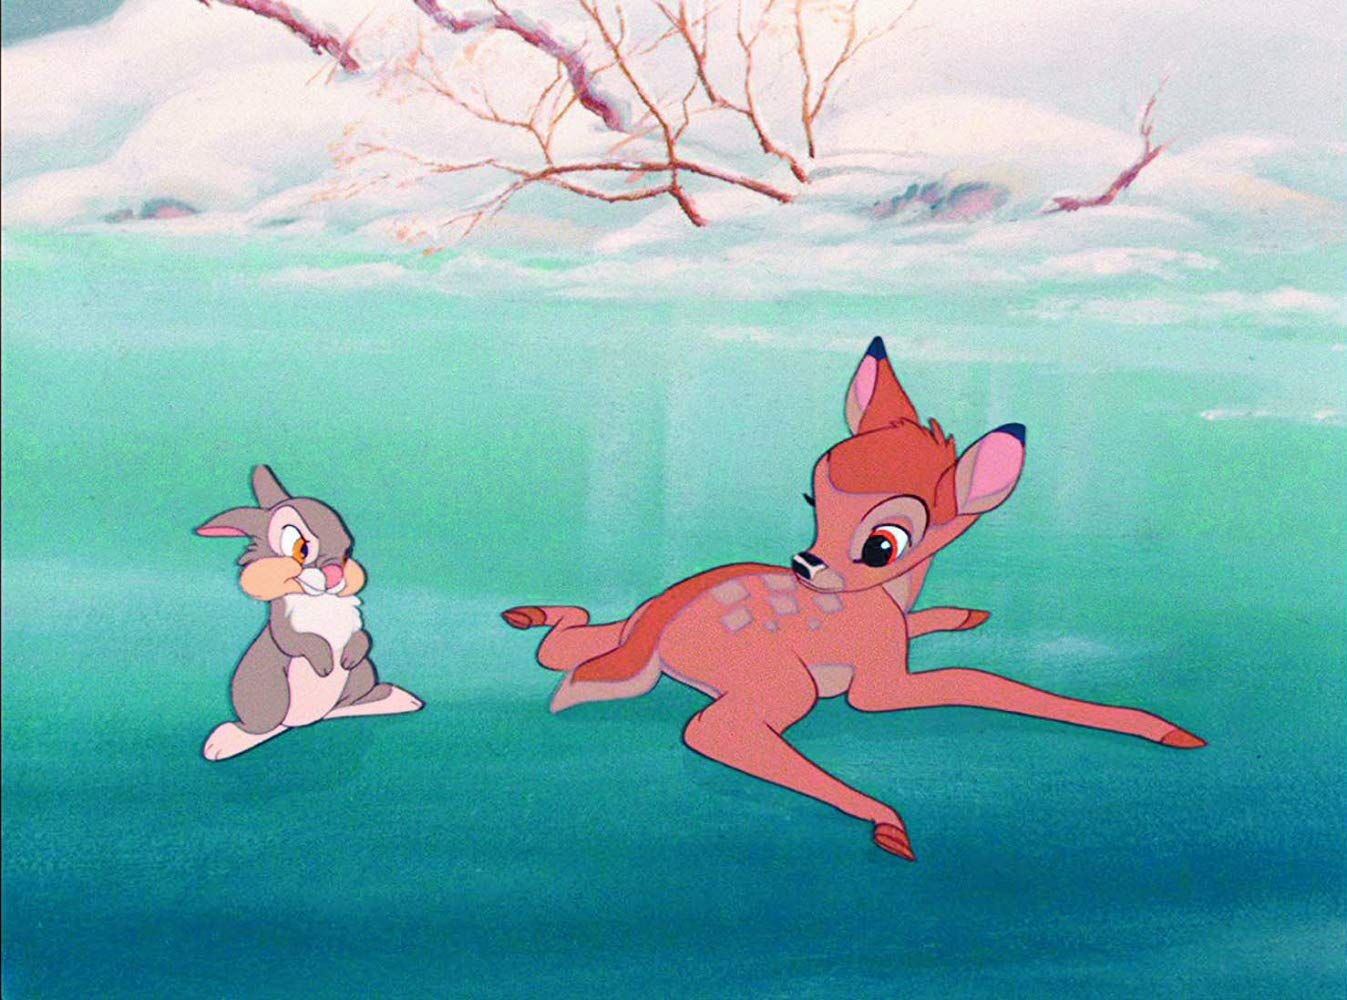 surprising facts about disney movies you probably didnt know